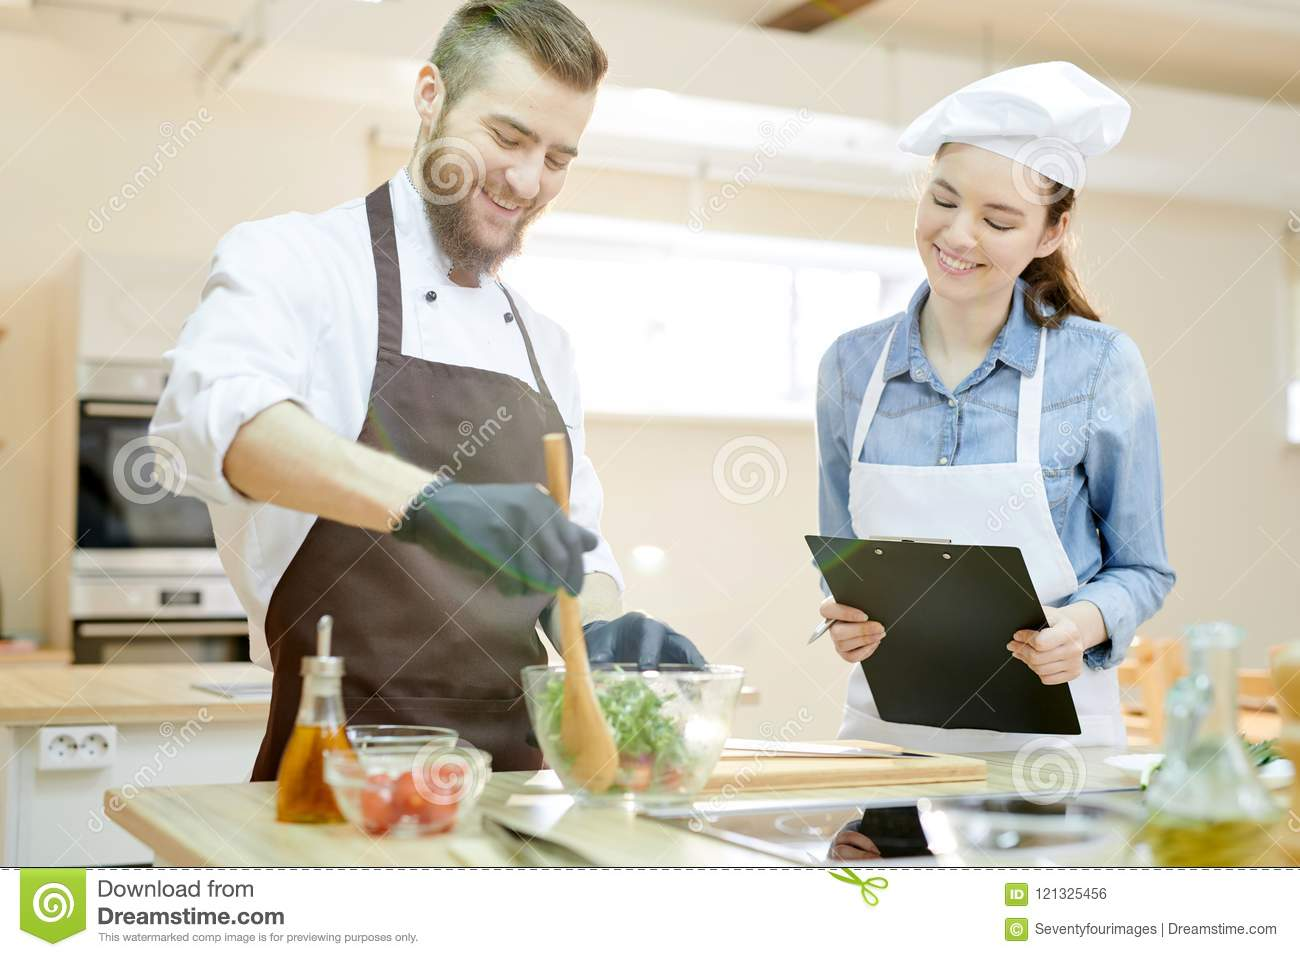 Smiling Chef Working In Restaurant Stock Photo Image Of Cook Apron 121325456